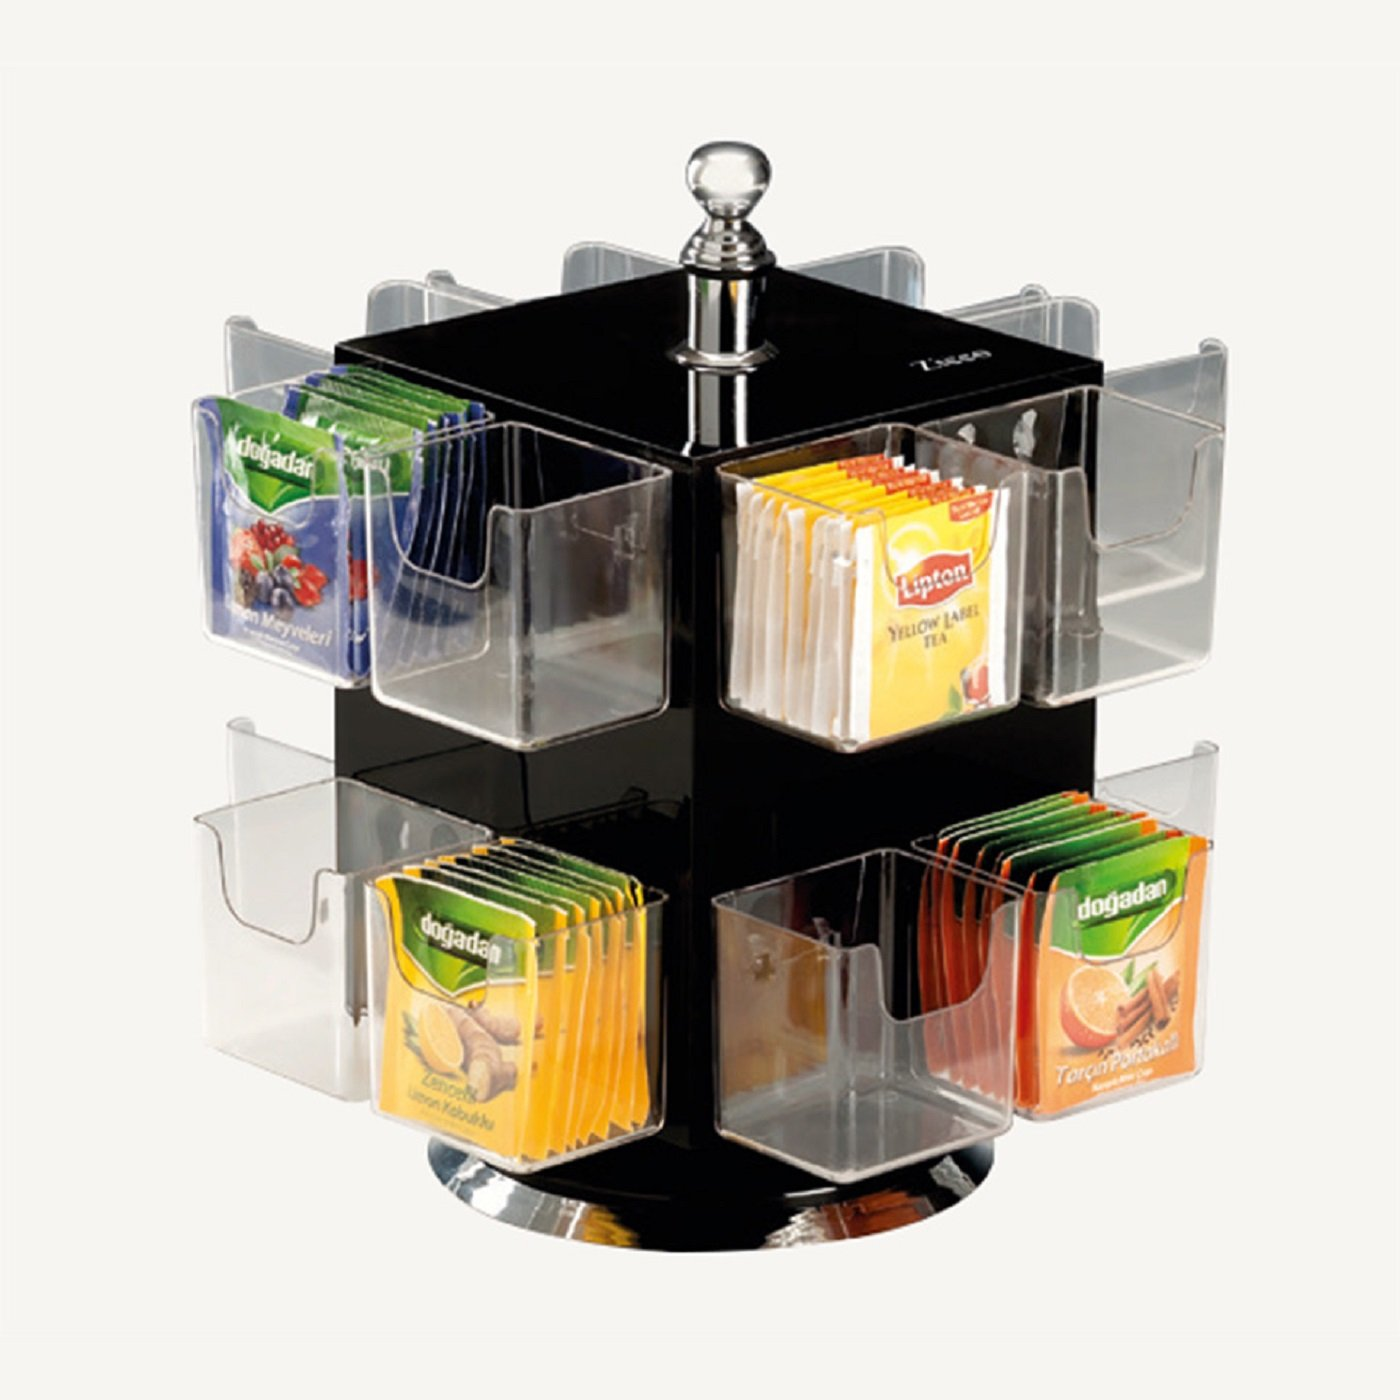 PROFESSIONAL Cafe Bistro Restaurant or for Home/Office use Polycarbonate Shelves and BLACK Acrylic Commercial Tea Packet Teabag Holder Display ROTARY Stand Storage Organizer Box 16 COMPARTMENT by Remta Makina